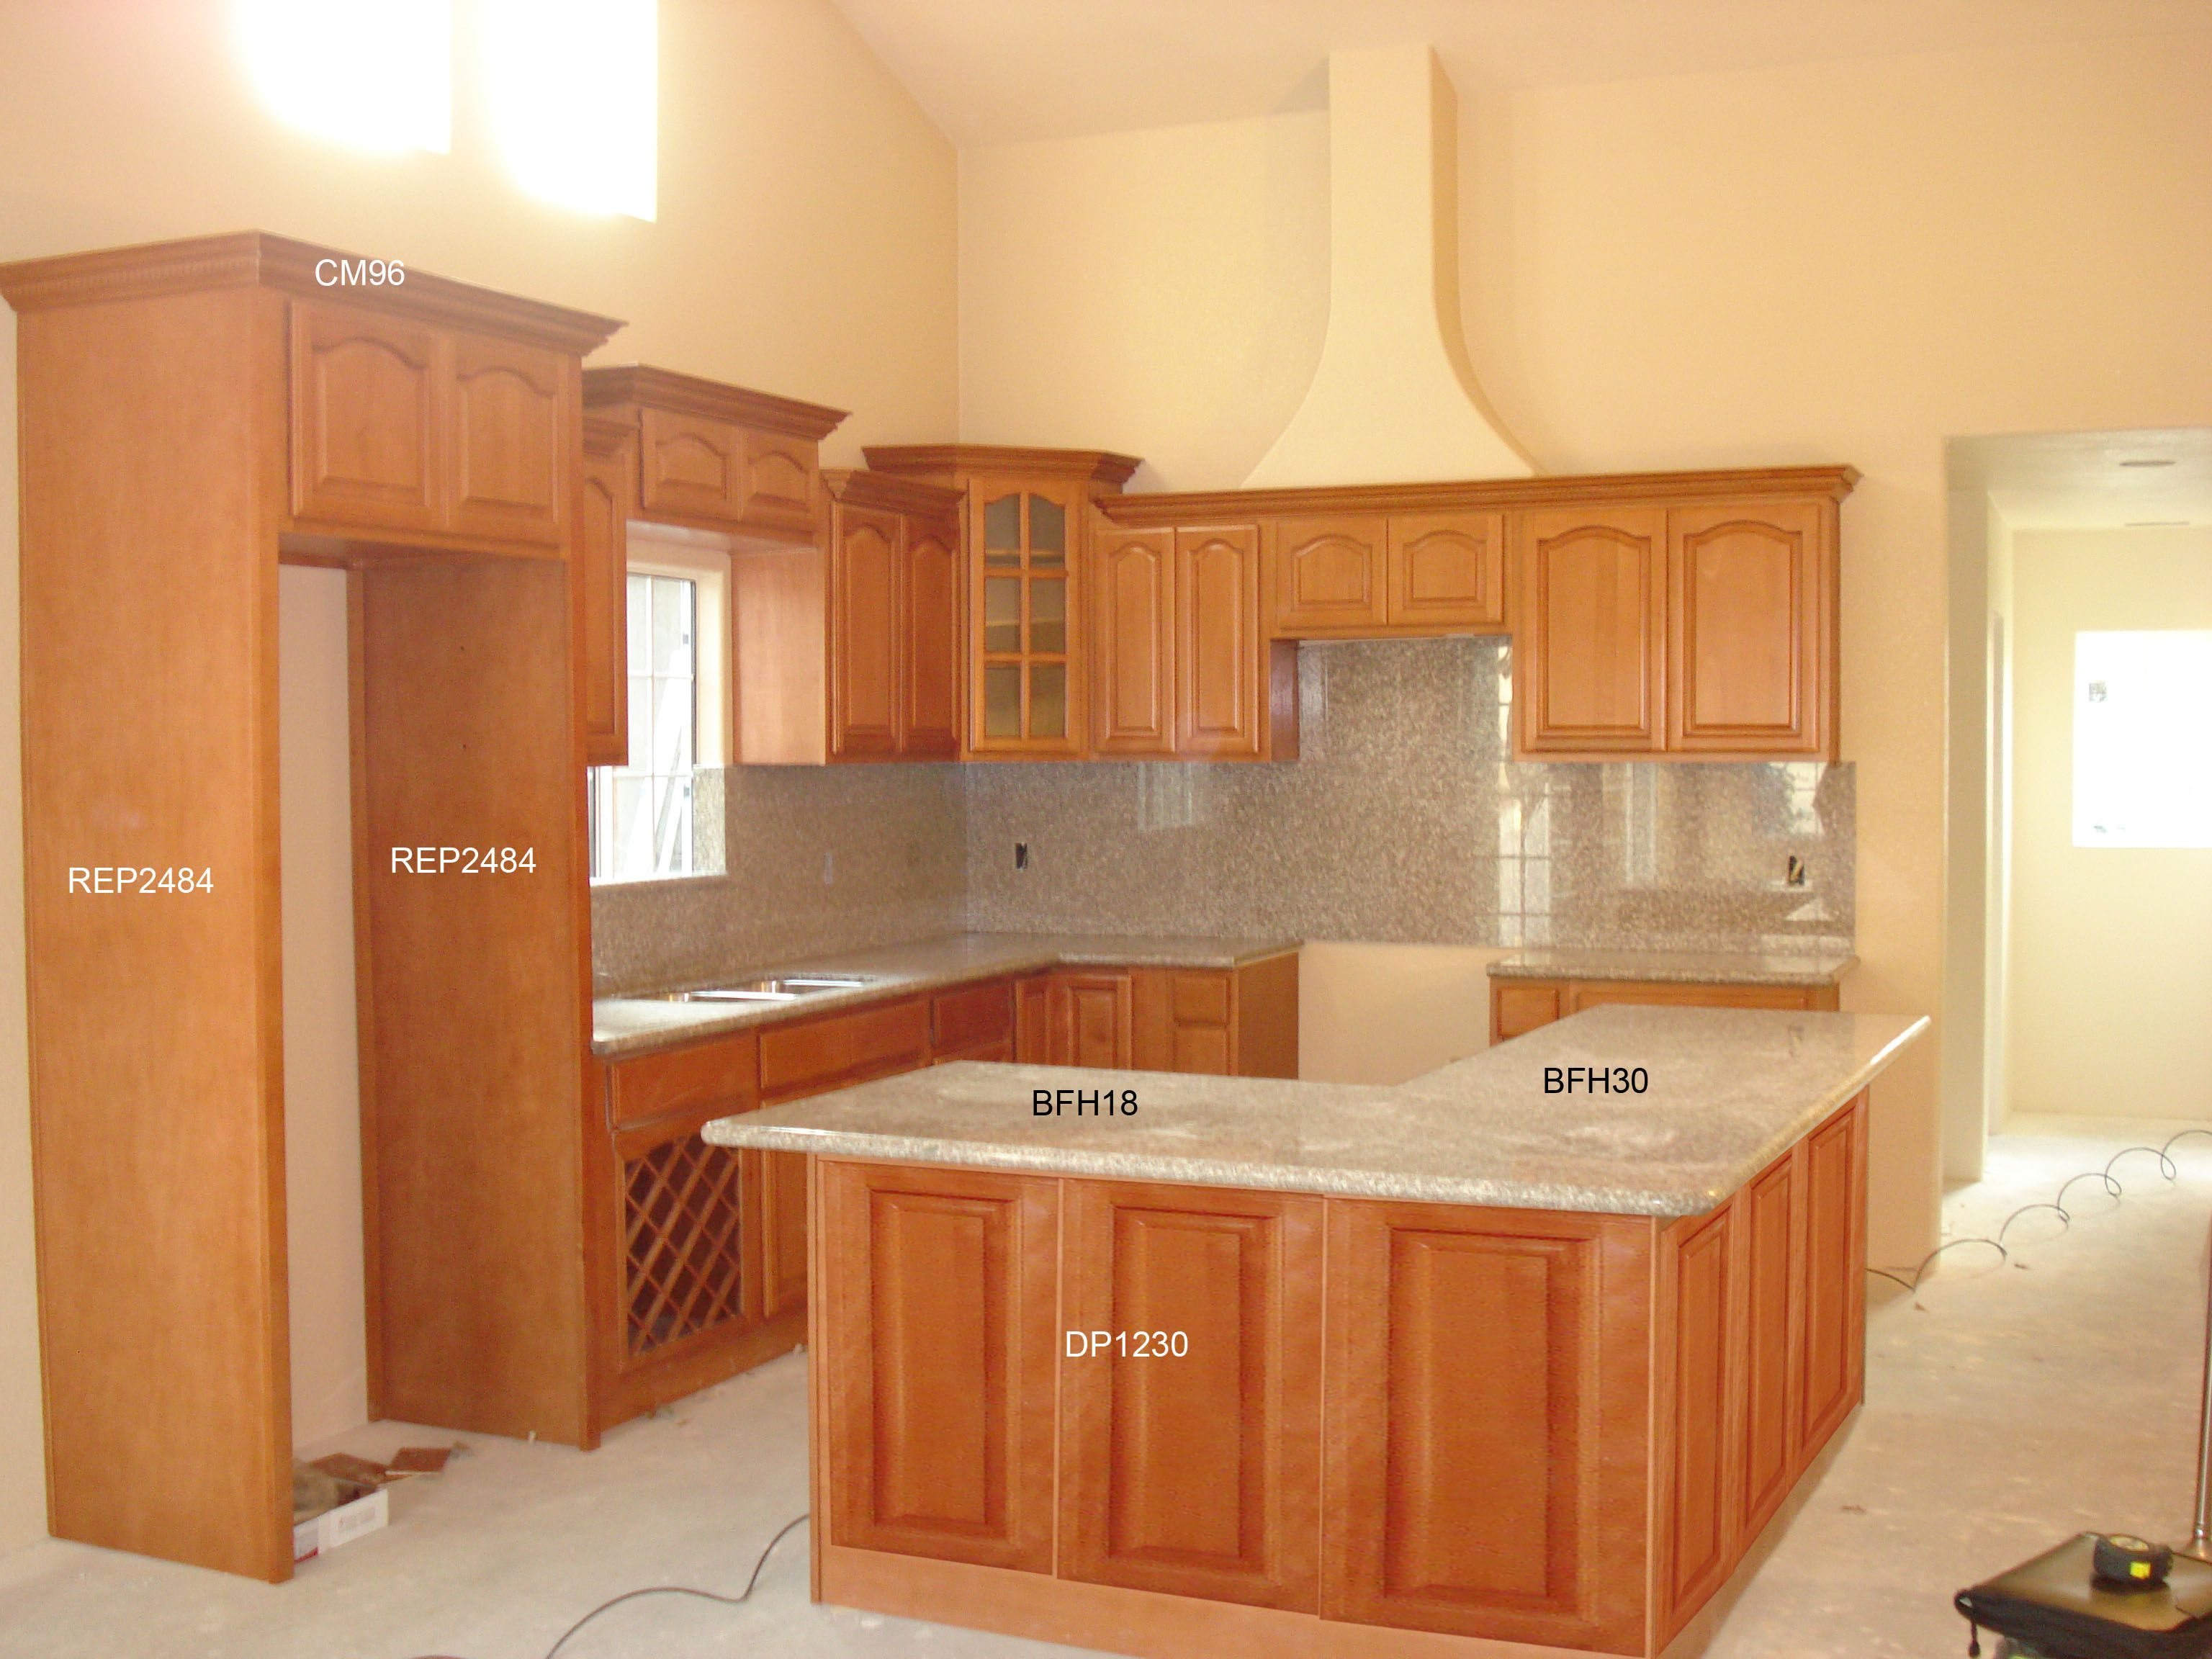 Kitchen Cabinets Traditional Solid Wood Kitchen Cabinets Building Kitchen Cabinets Traditional Bedroom Design